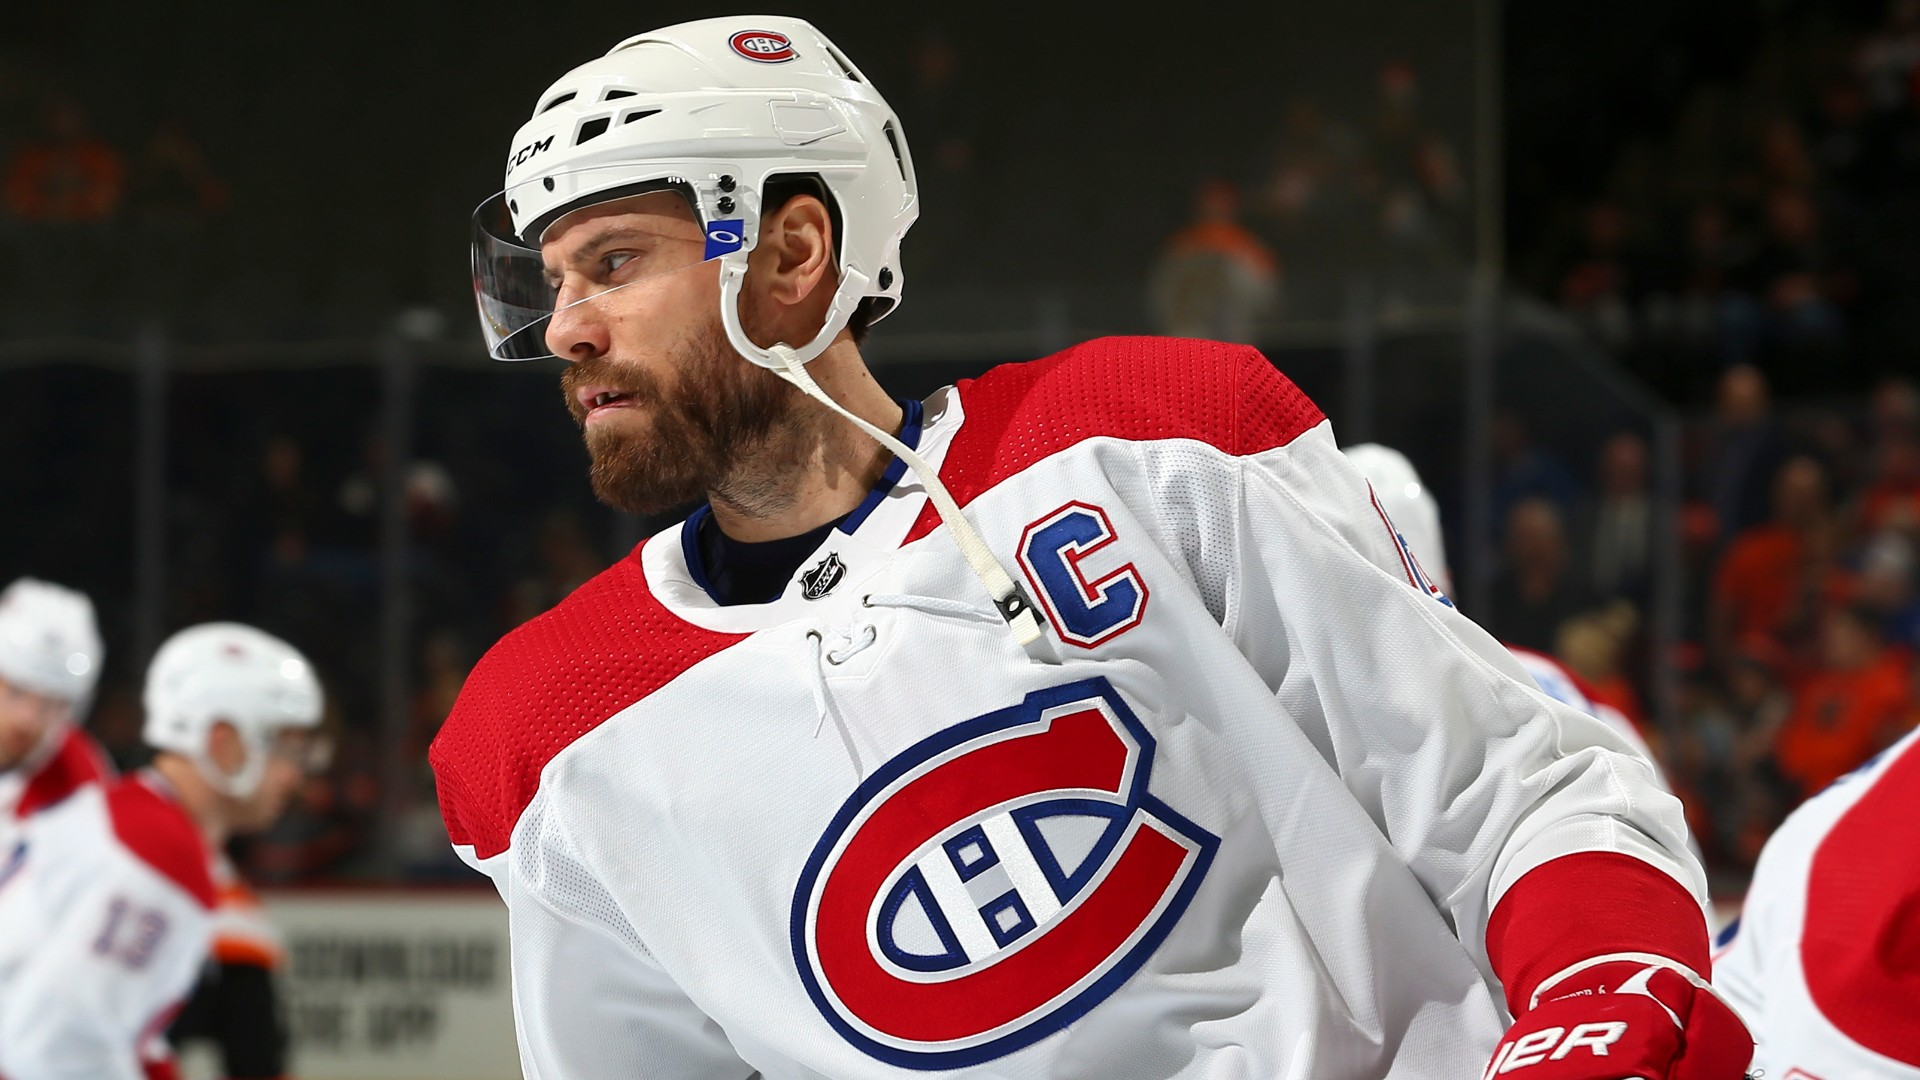 Canadiens' Shea Weber excited about 24-team playoff: 'It gives us a chance to keep playing'